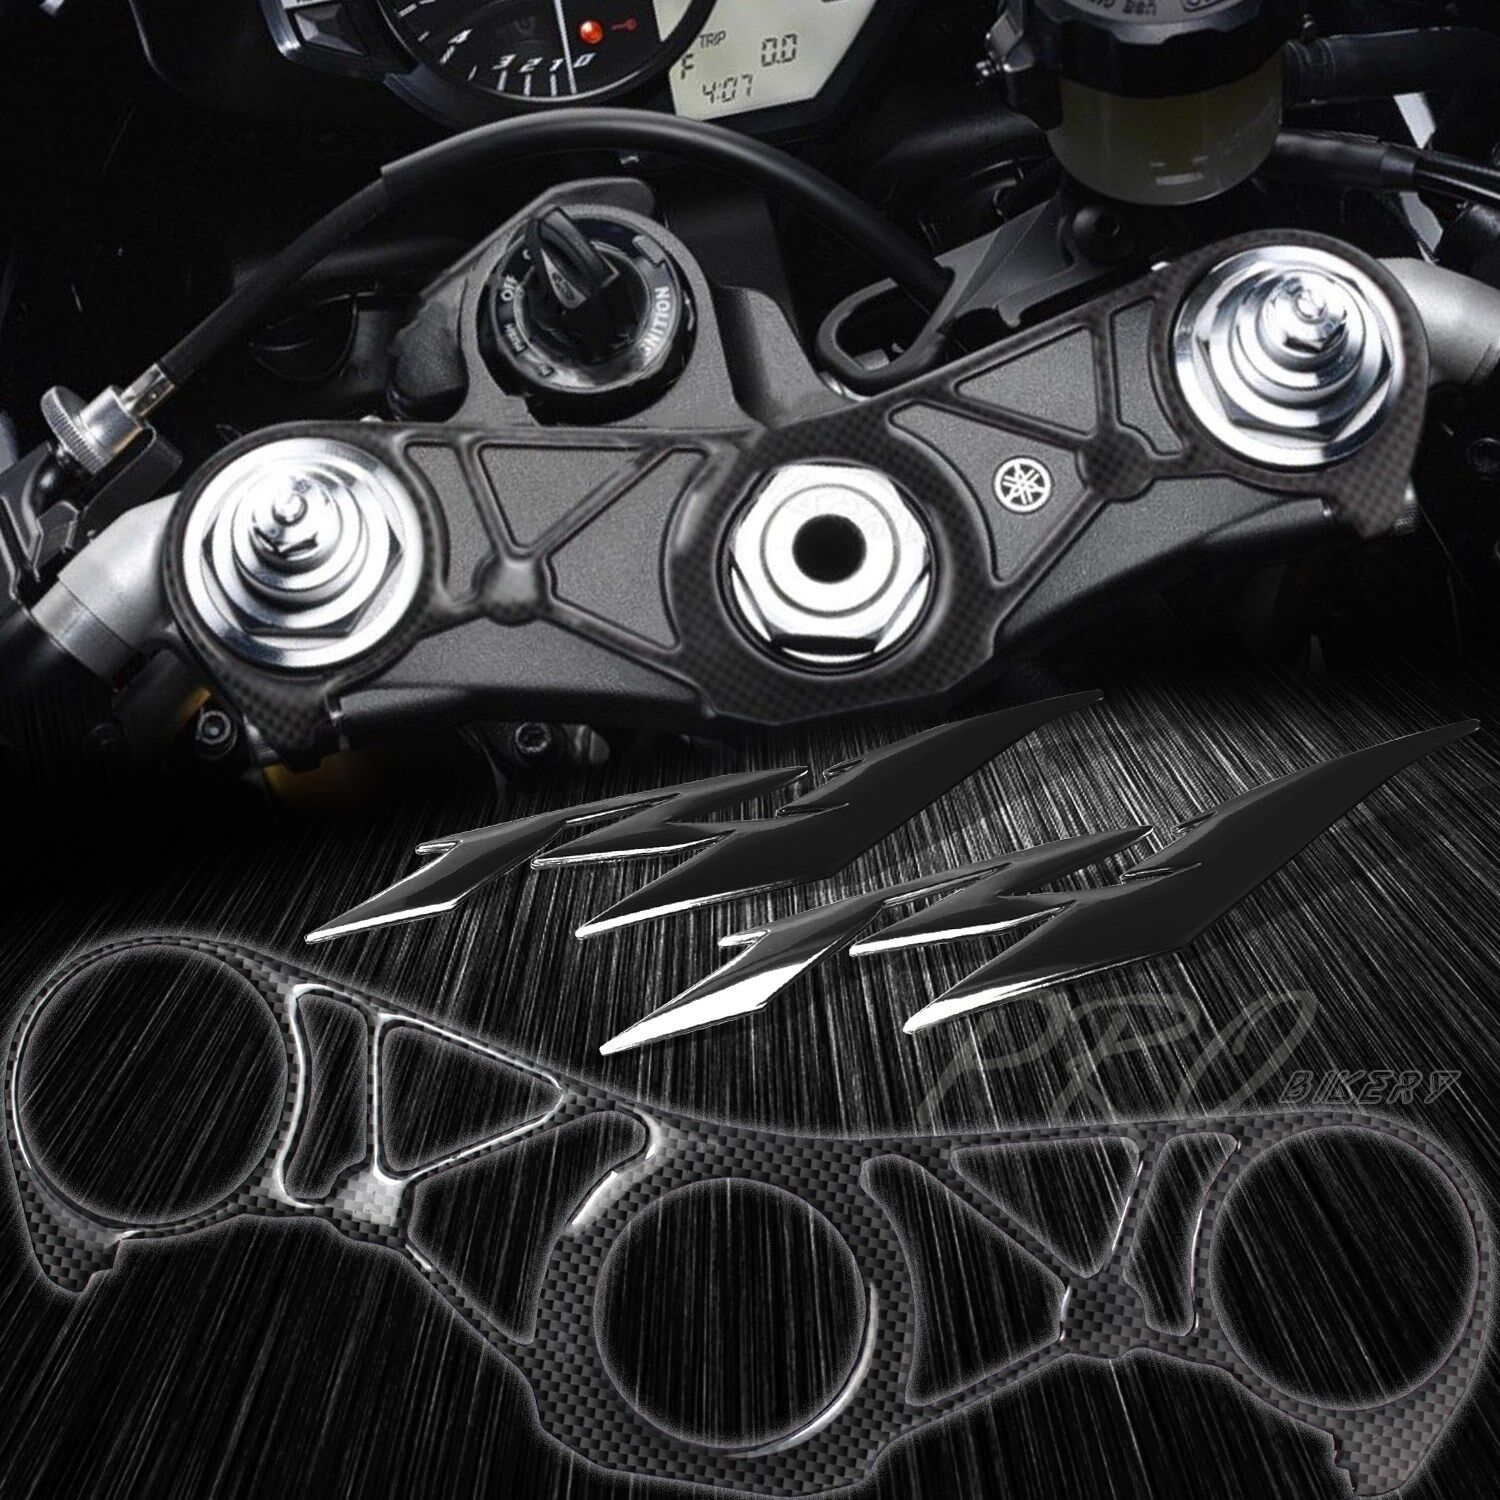 YAMAHA YZF R1 1998-2001 Carbon Fiber Effect Top Yoke Protector Cover Decal